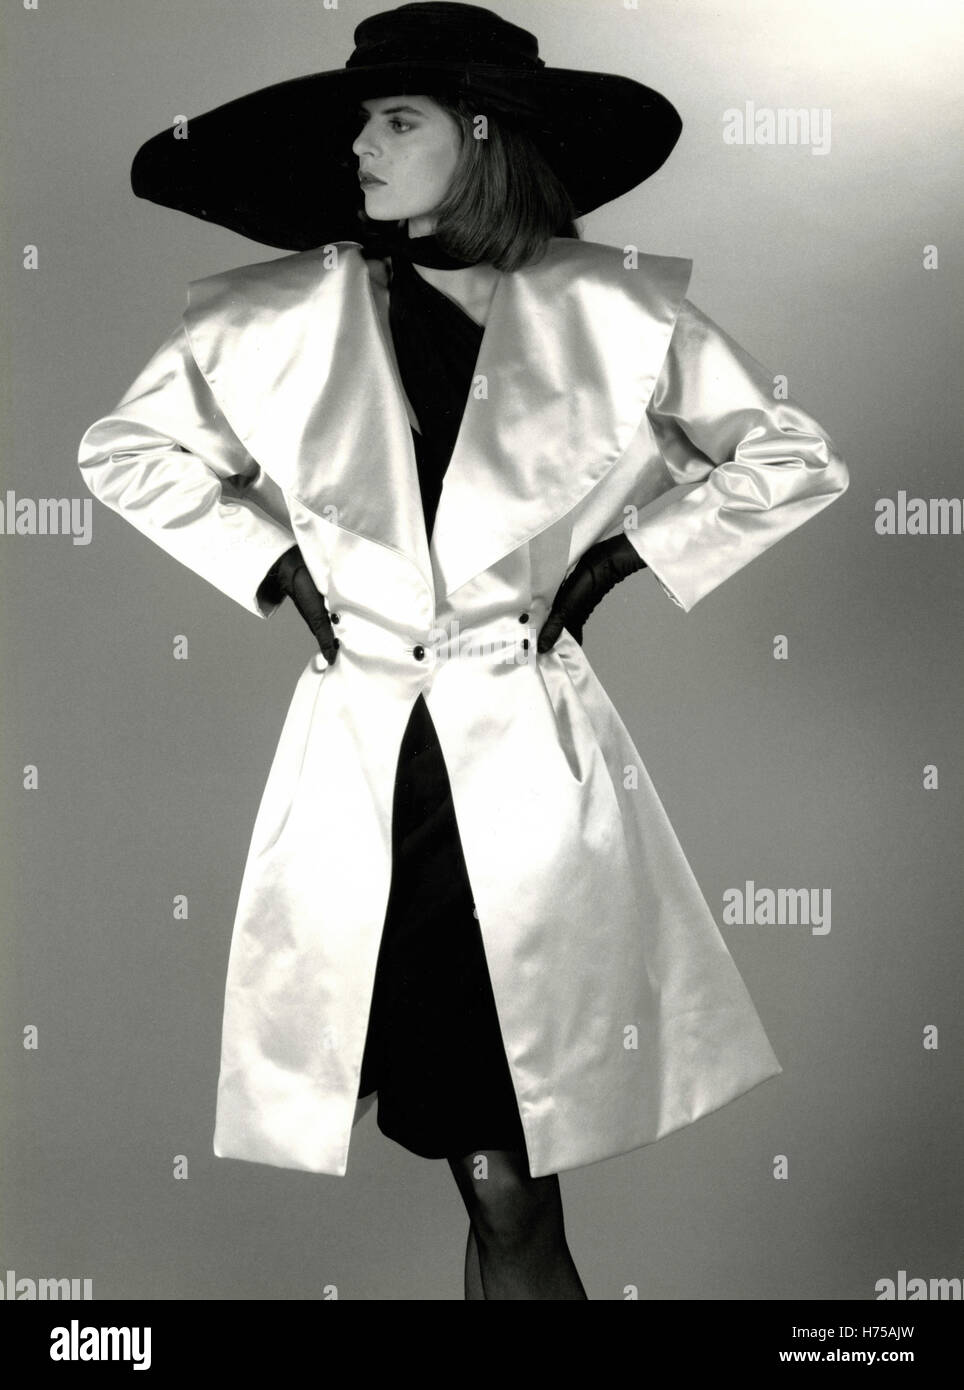 Model wearing a dress by Emanuel Ungaro, Paris, France 1986 - Stock Image